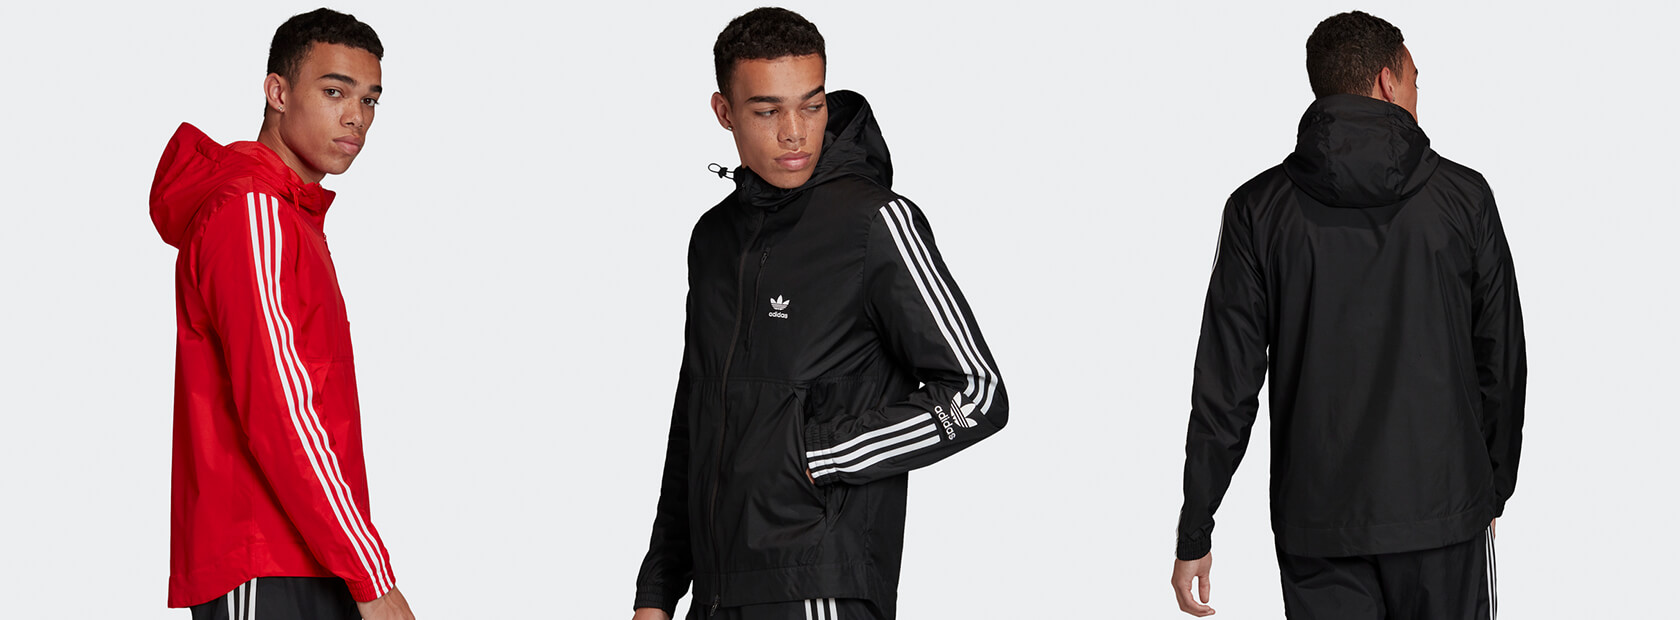 Adidas Lock Up Windbreaker Jacket